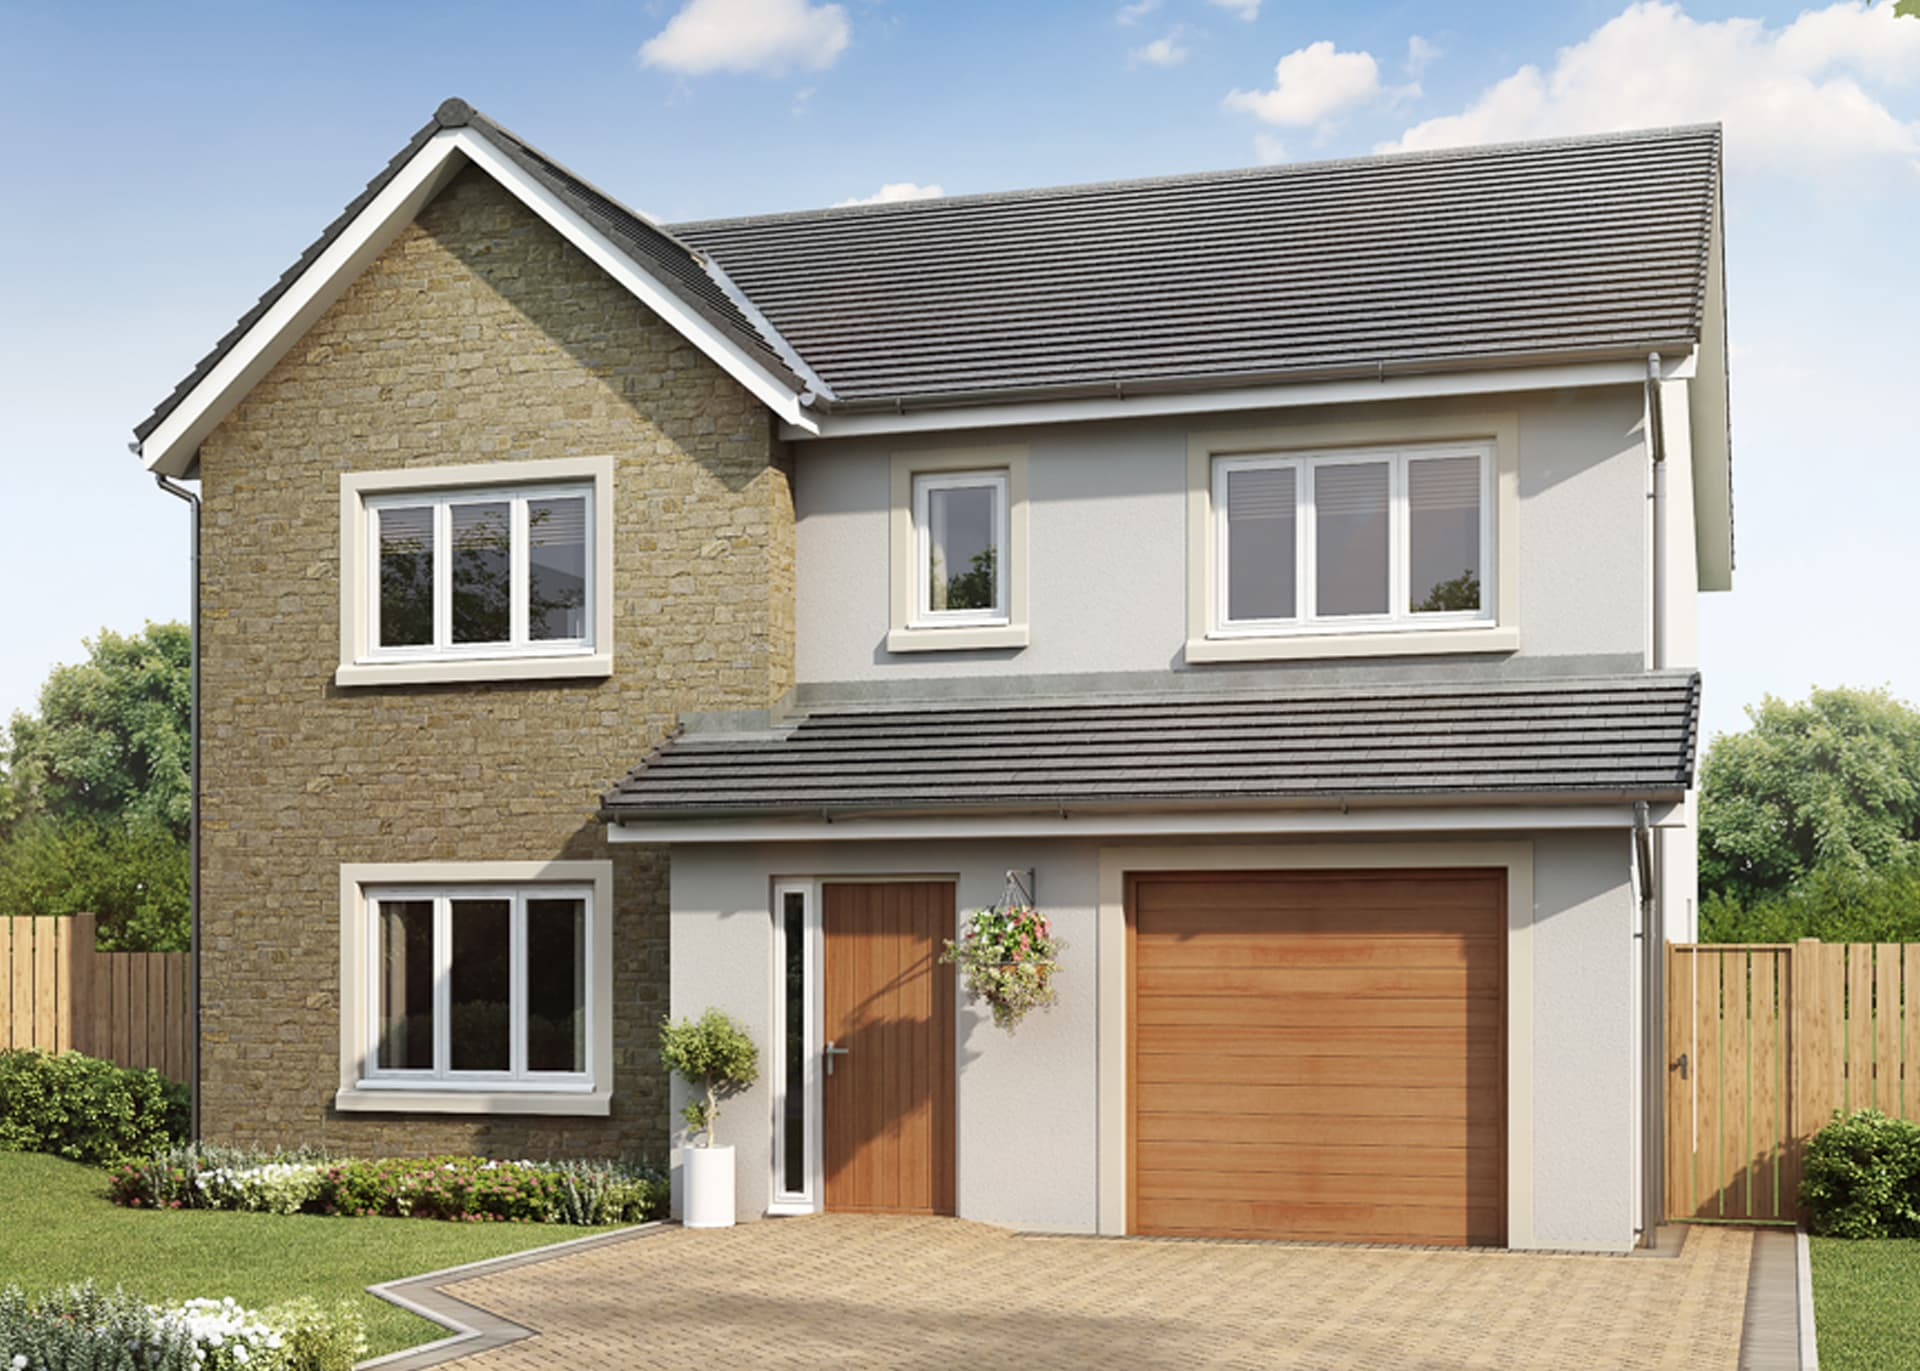 The Beech Reayrt Mie to rent 4 bed house